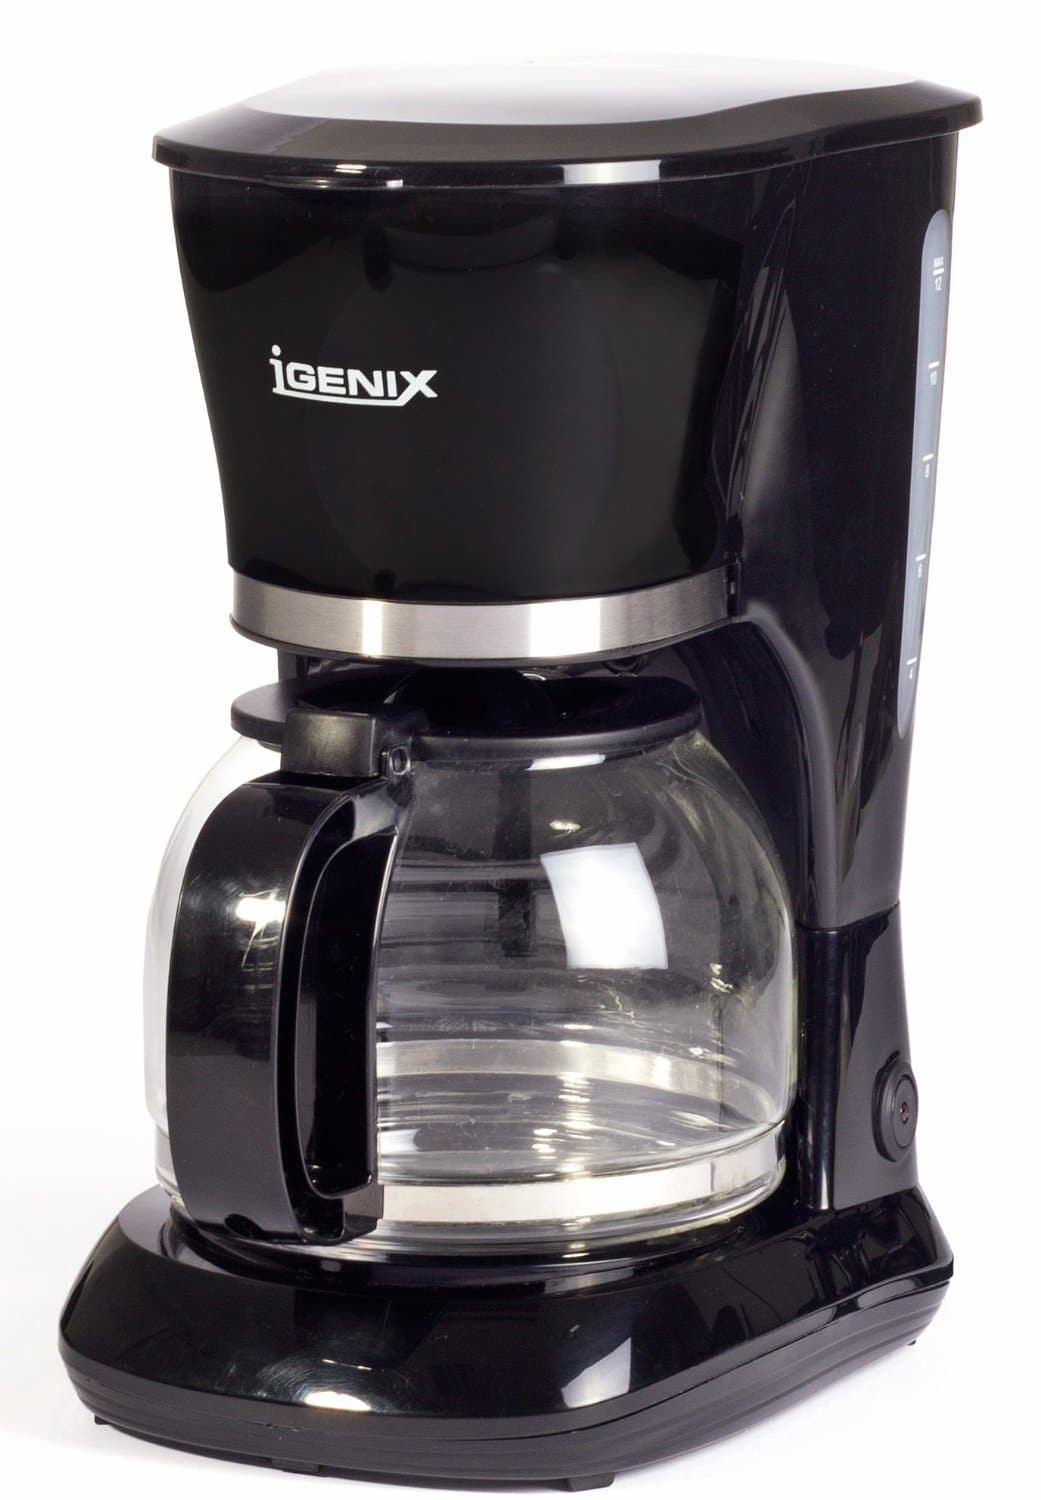 Igenix IG8126 10-Cup Filter Coffee Maker